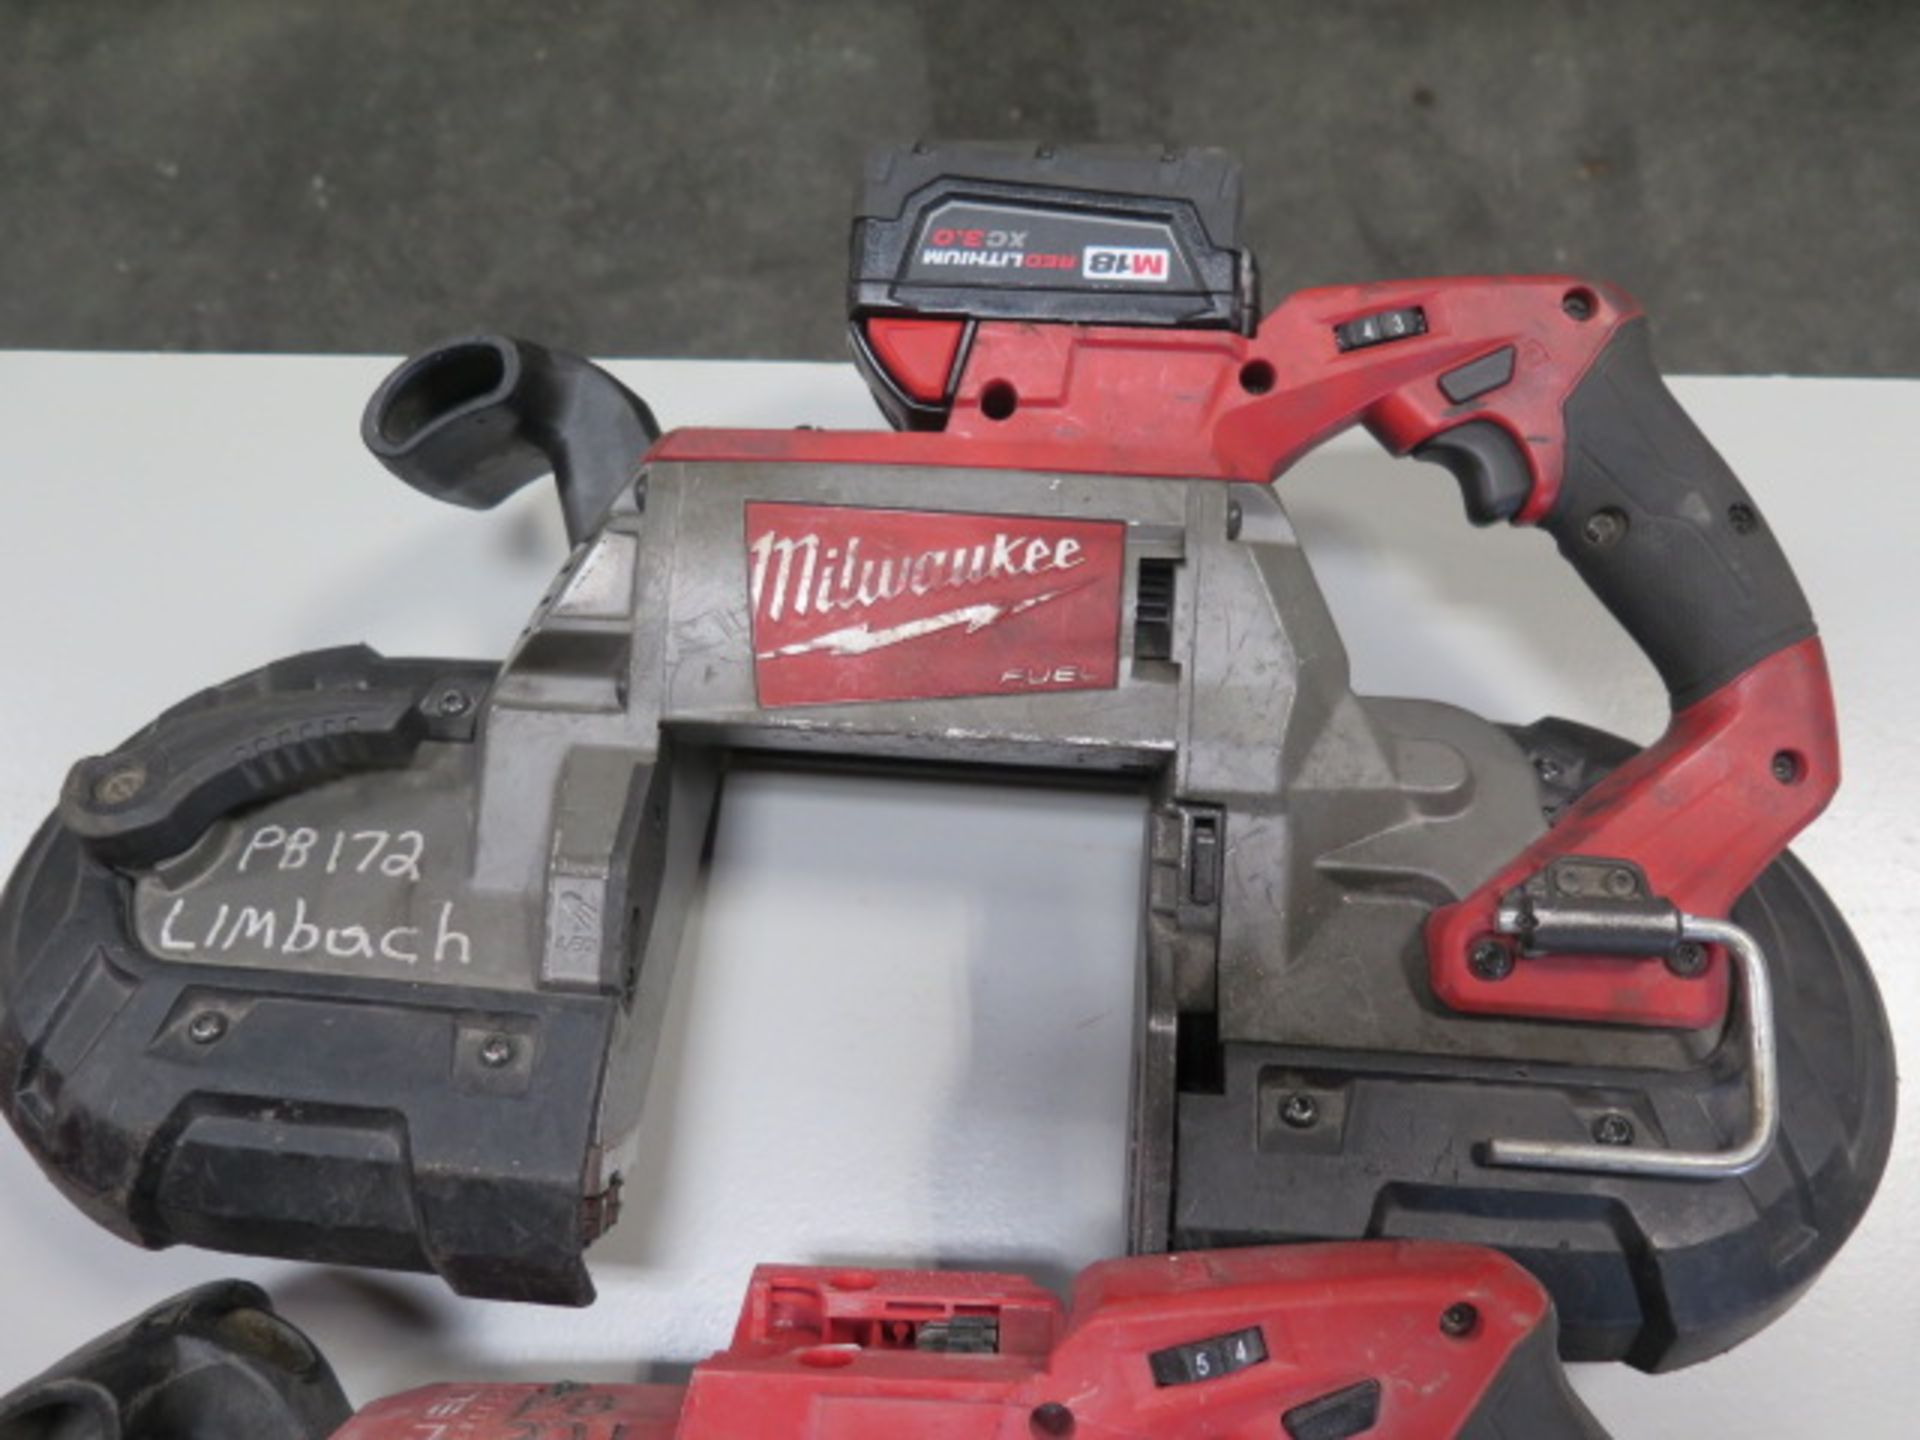 Milwaukee 18 Volt Portable Band Saws (3) (SOLD AS-IS - NO WARRANTY) - Image 5 of 7